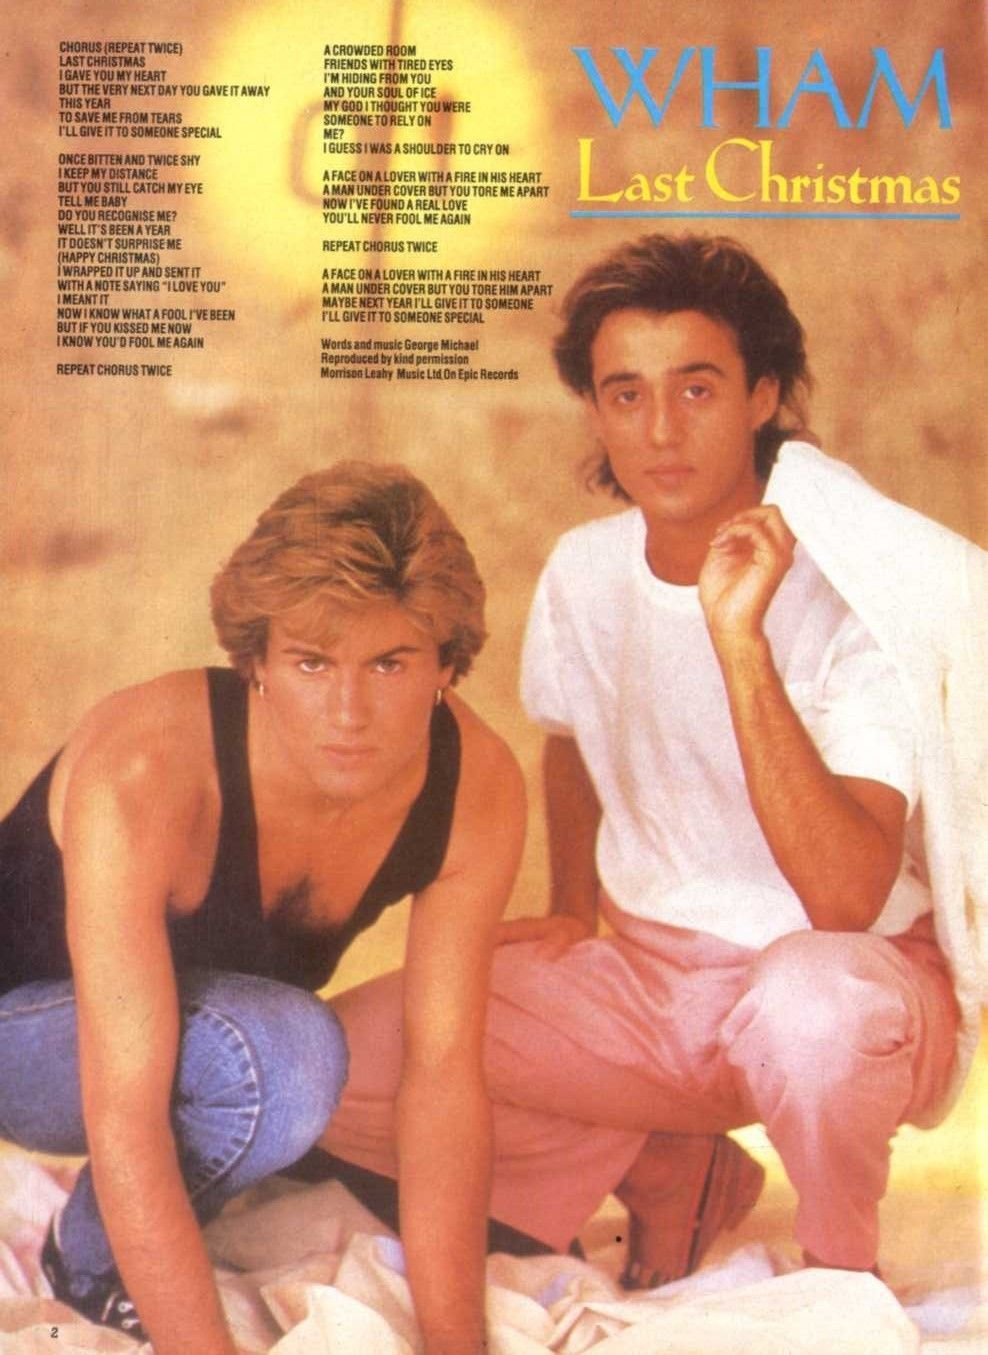 N184 1 X2f 12p02 Wham Last Christmas Songwords Poster 11x8 Amp 034 In Music Music Memorabilia Pop Ebay George Michael George Andrew Ridgeley